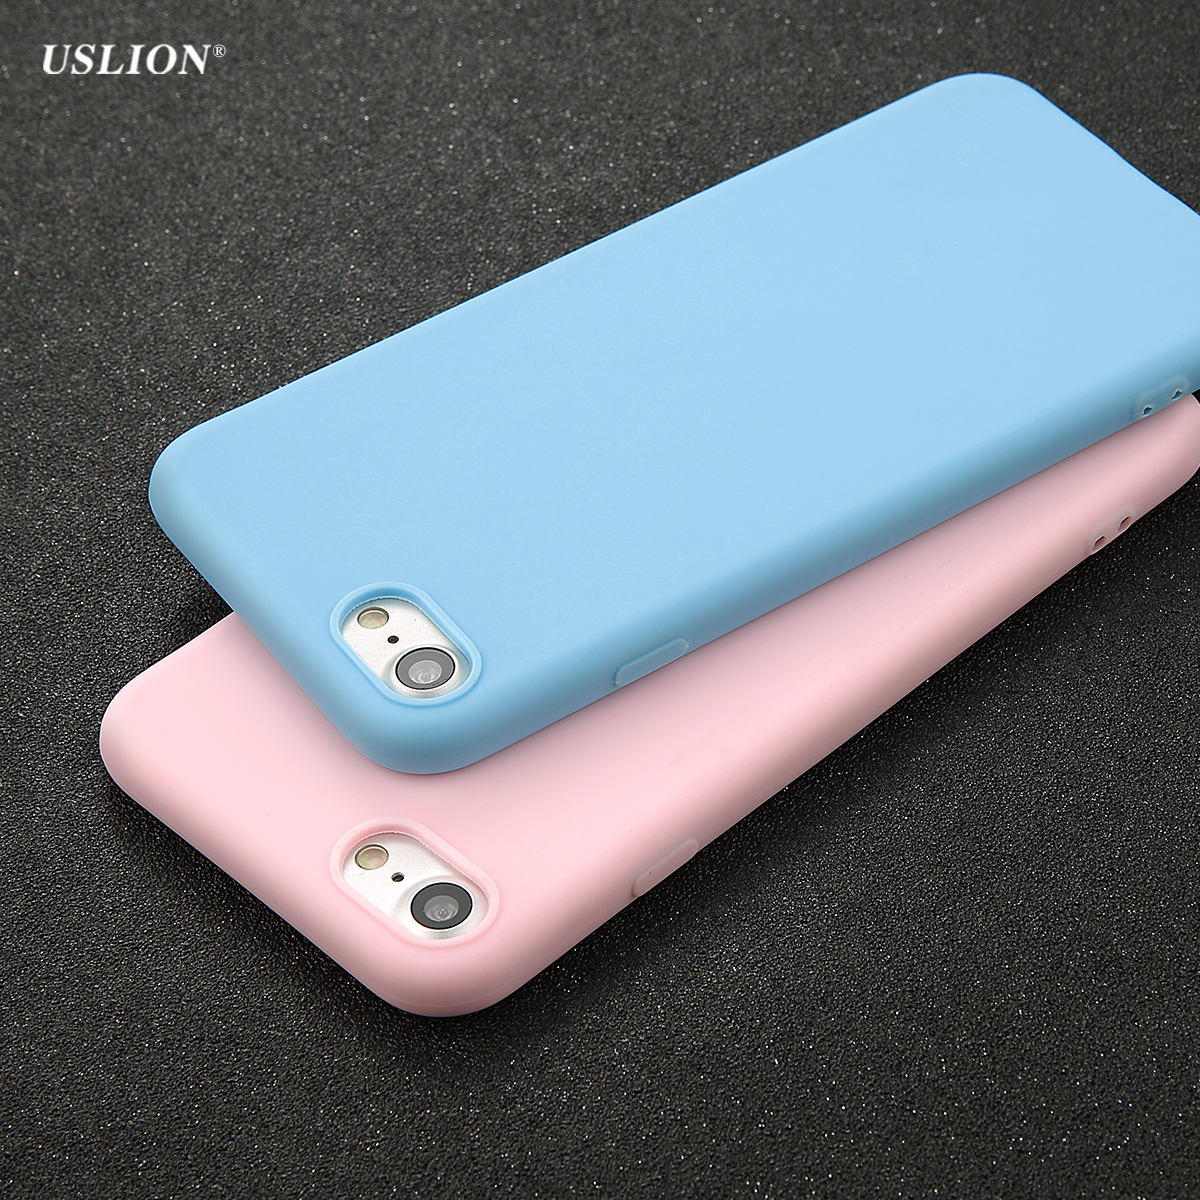 все цены на USLION Phone Case For iPhone 7 6 6s 8 X Plus 5 5s SE XR XS Simple Solid Color Ultrathin Soft TPU Cases Candy Color Back Cover онлайн